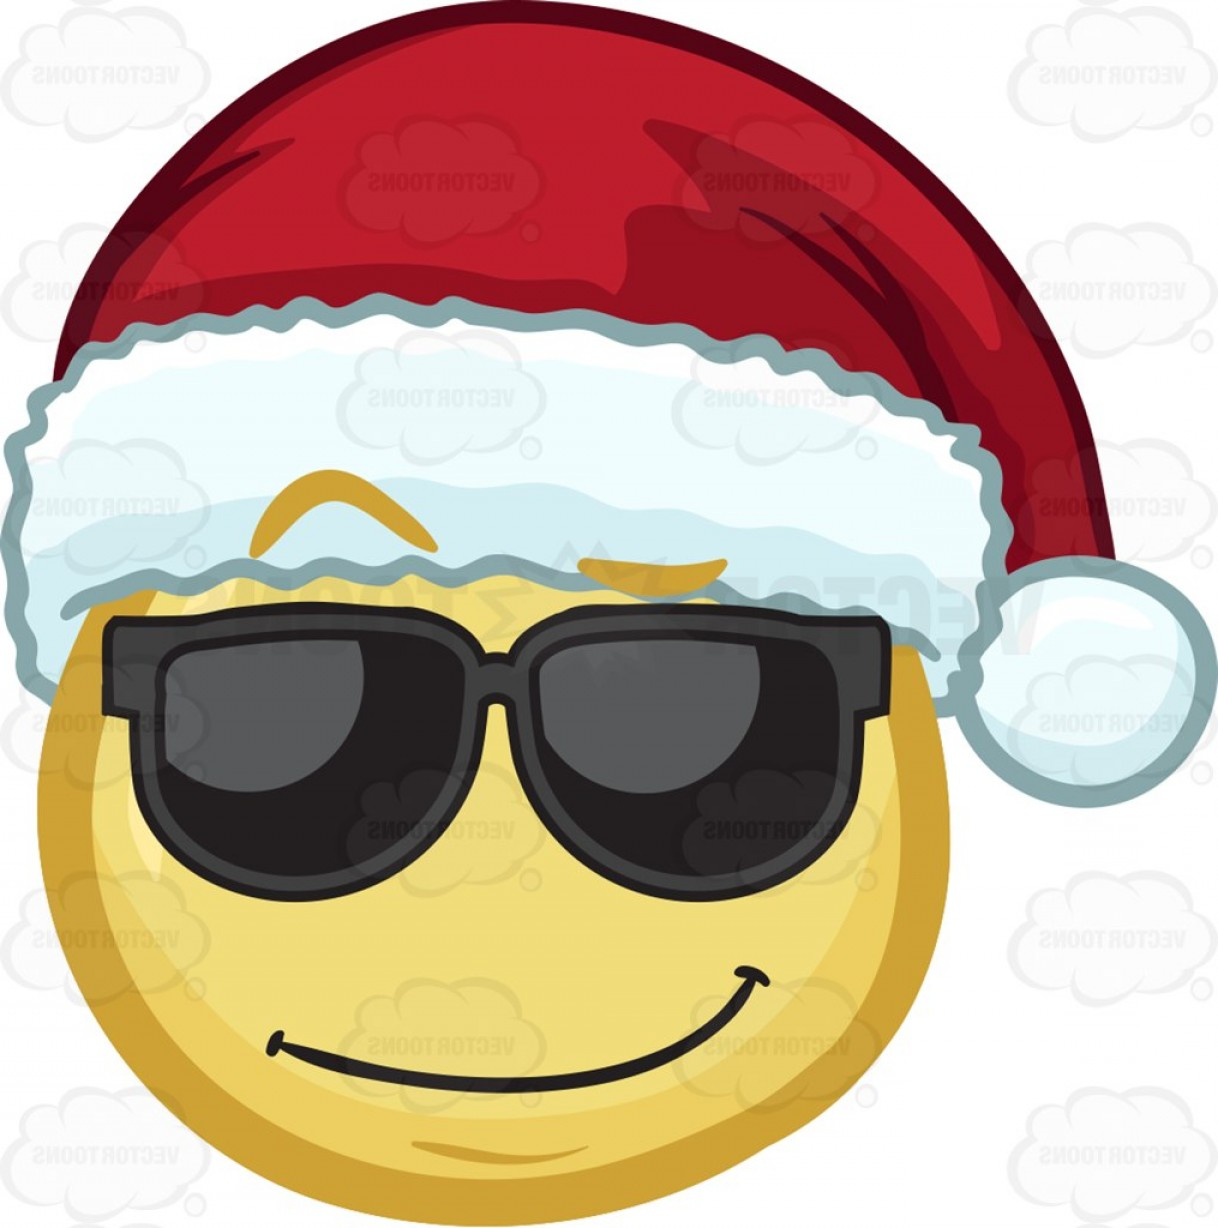 Santa Hat Vector Logo: A Cool Looking Emoji Wearing A Santa Hat